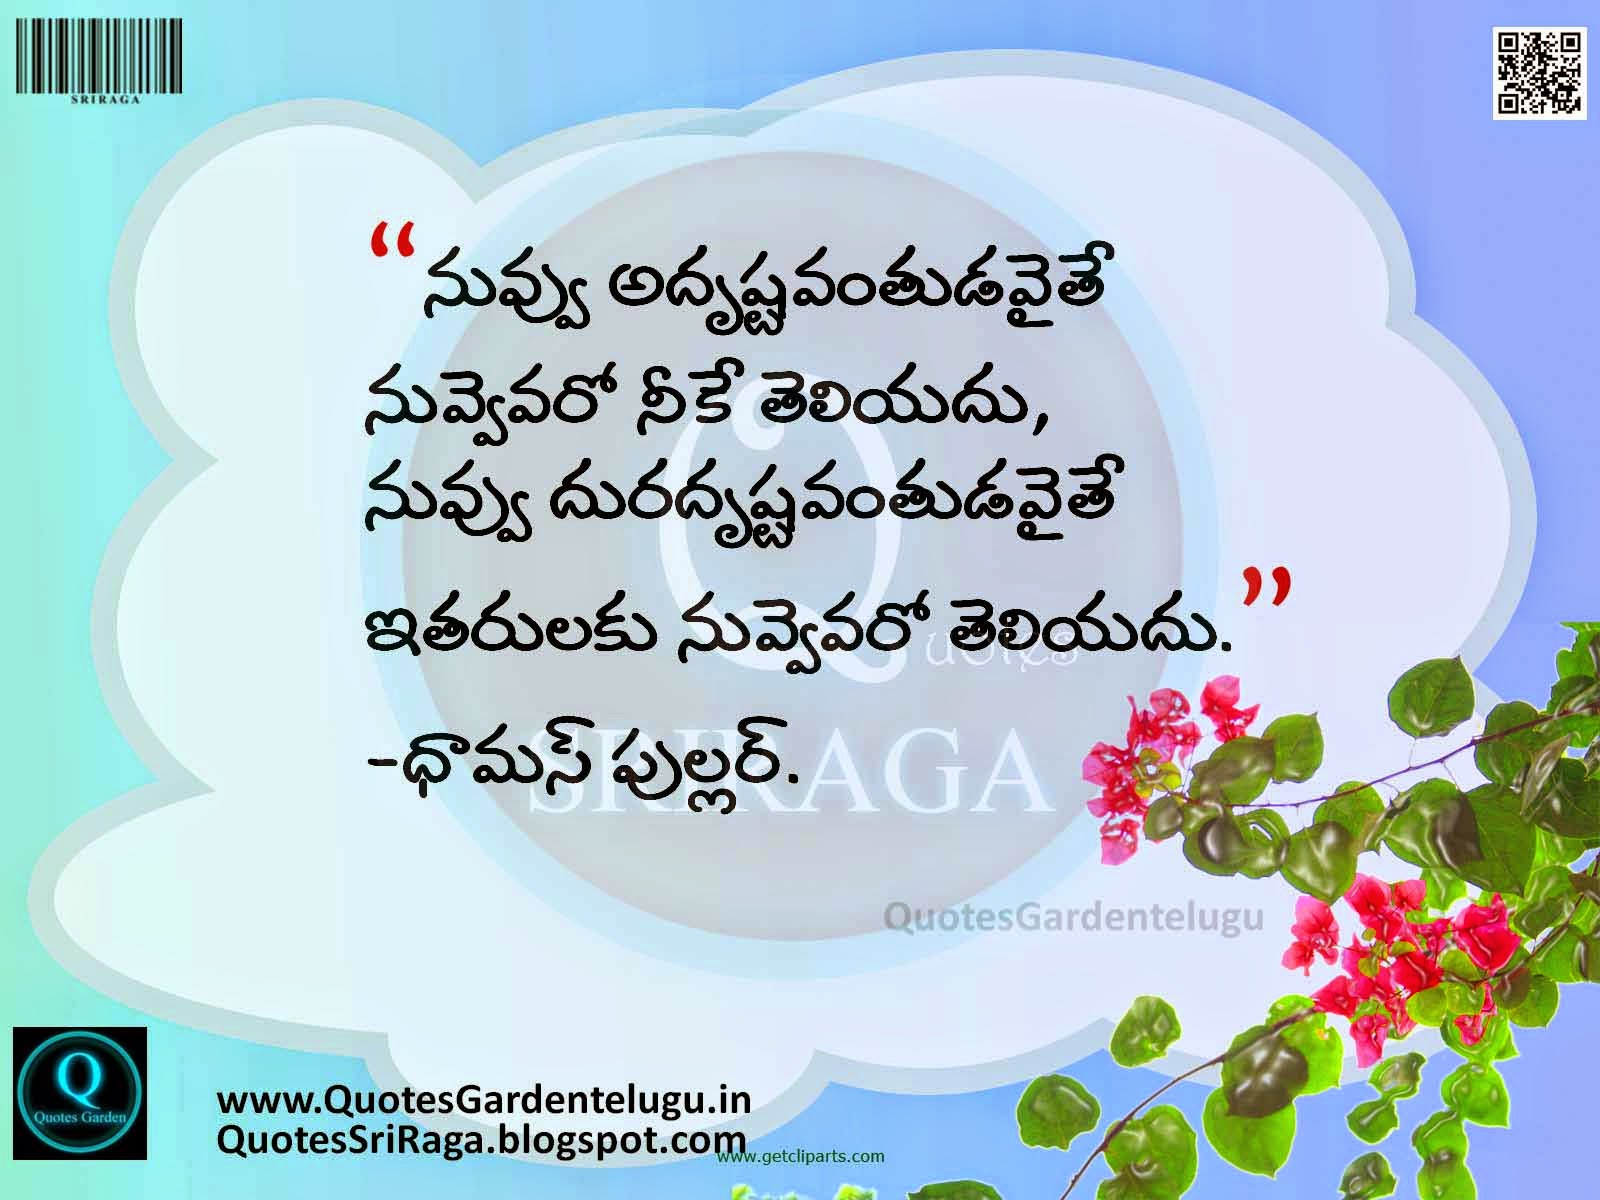 Best Telugu Good Reads Telugu with Beautiful images Hdwallpapers Inspirational with HDimages Telugu Quotes images